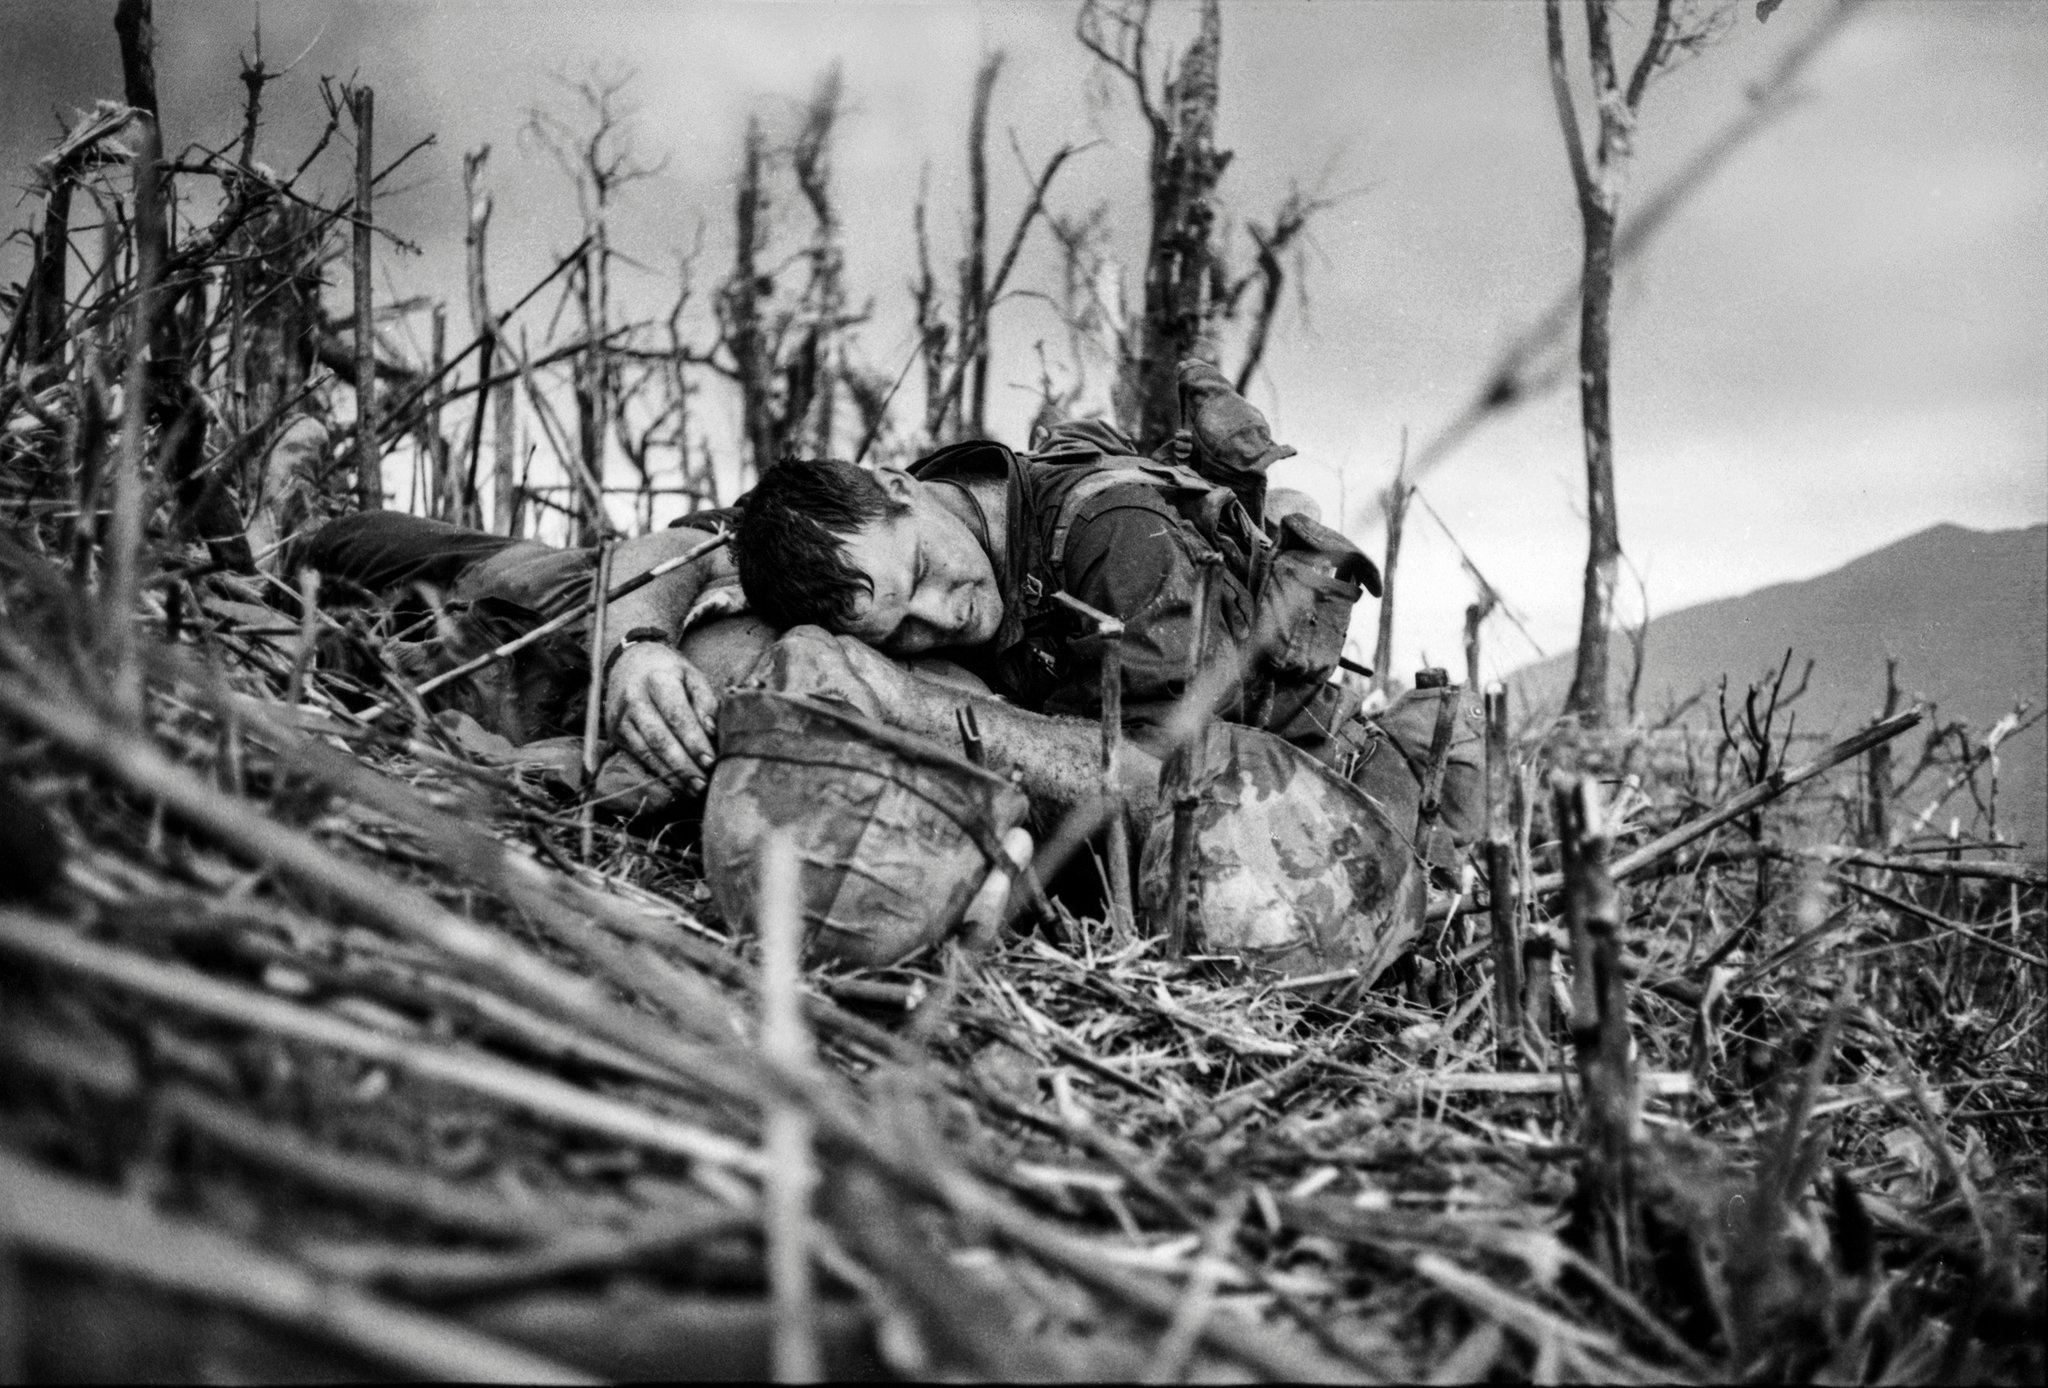 In Her Own Words Photographing The Vietnam War